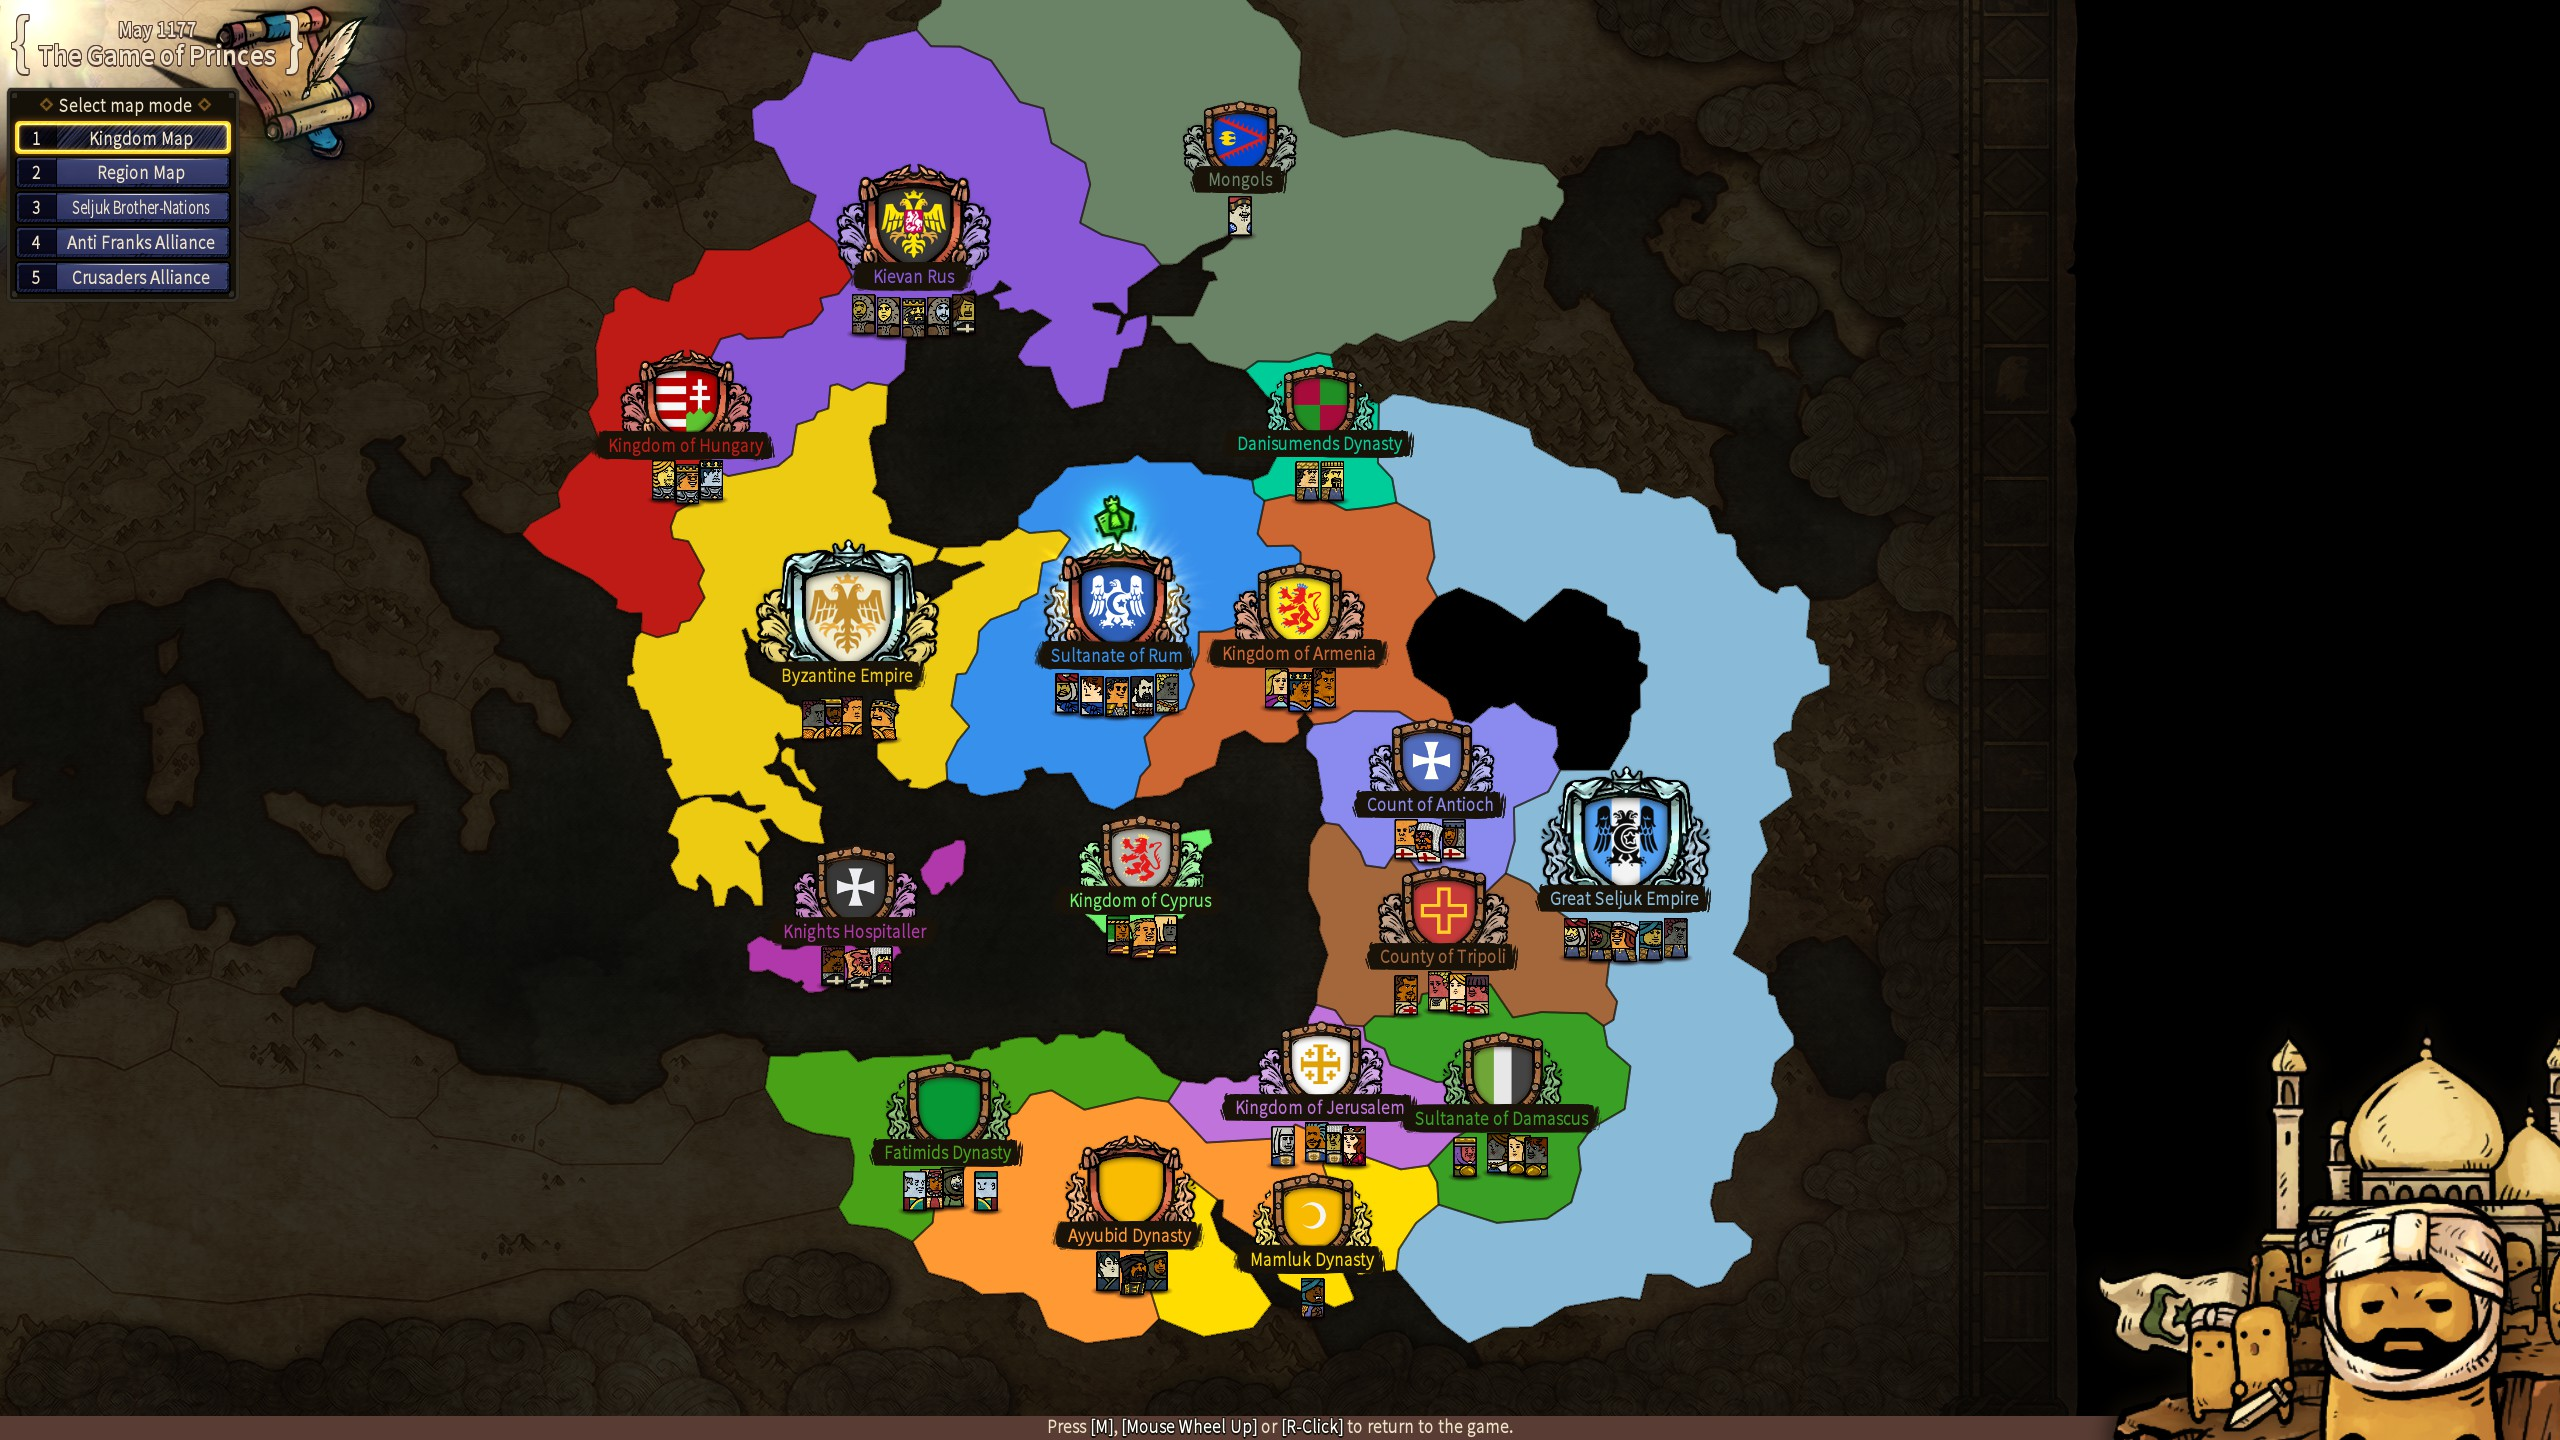 A screenshot showing a map of Kingdoms in Plebby Quest: The Crusades, with areas including the Sultanate Of Damascus and the Great Seljuk Empire